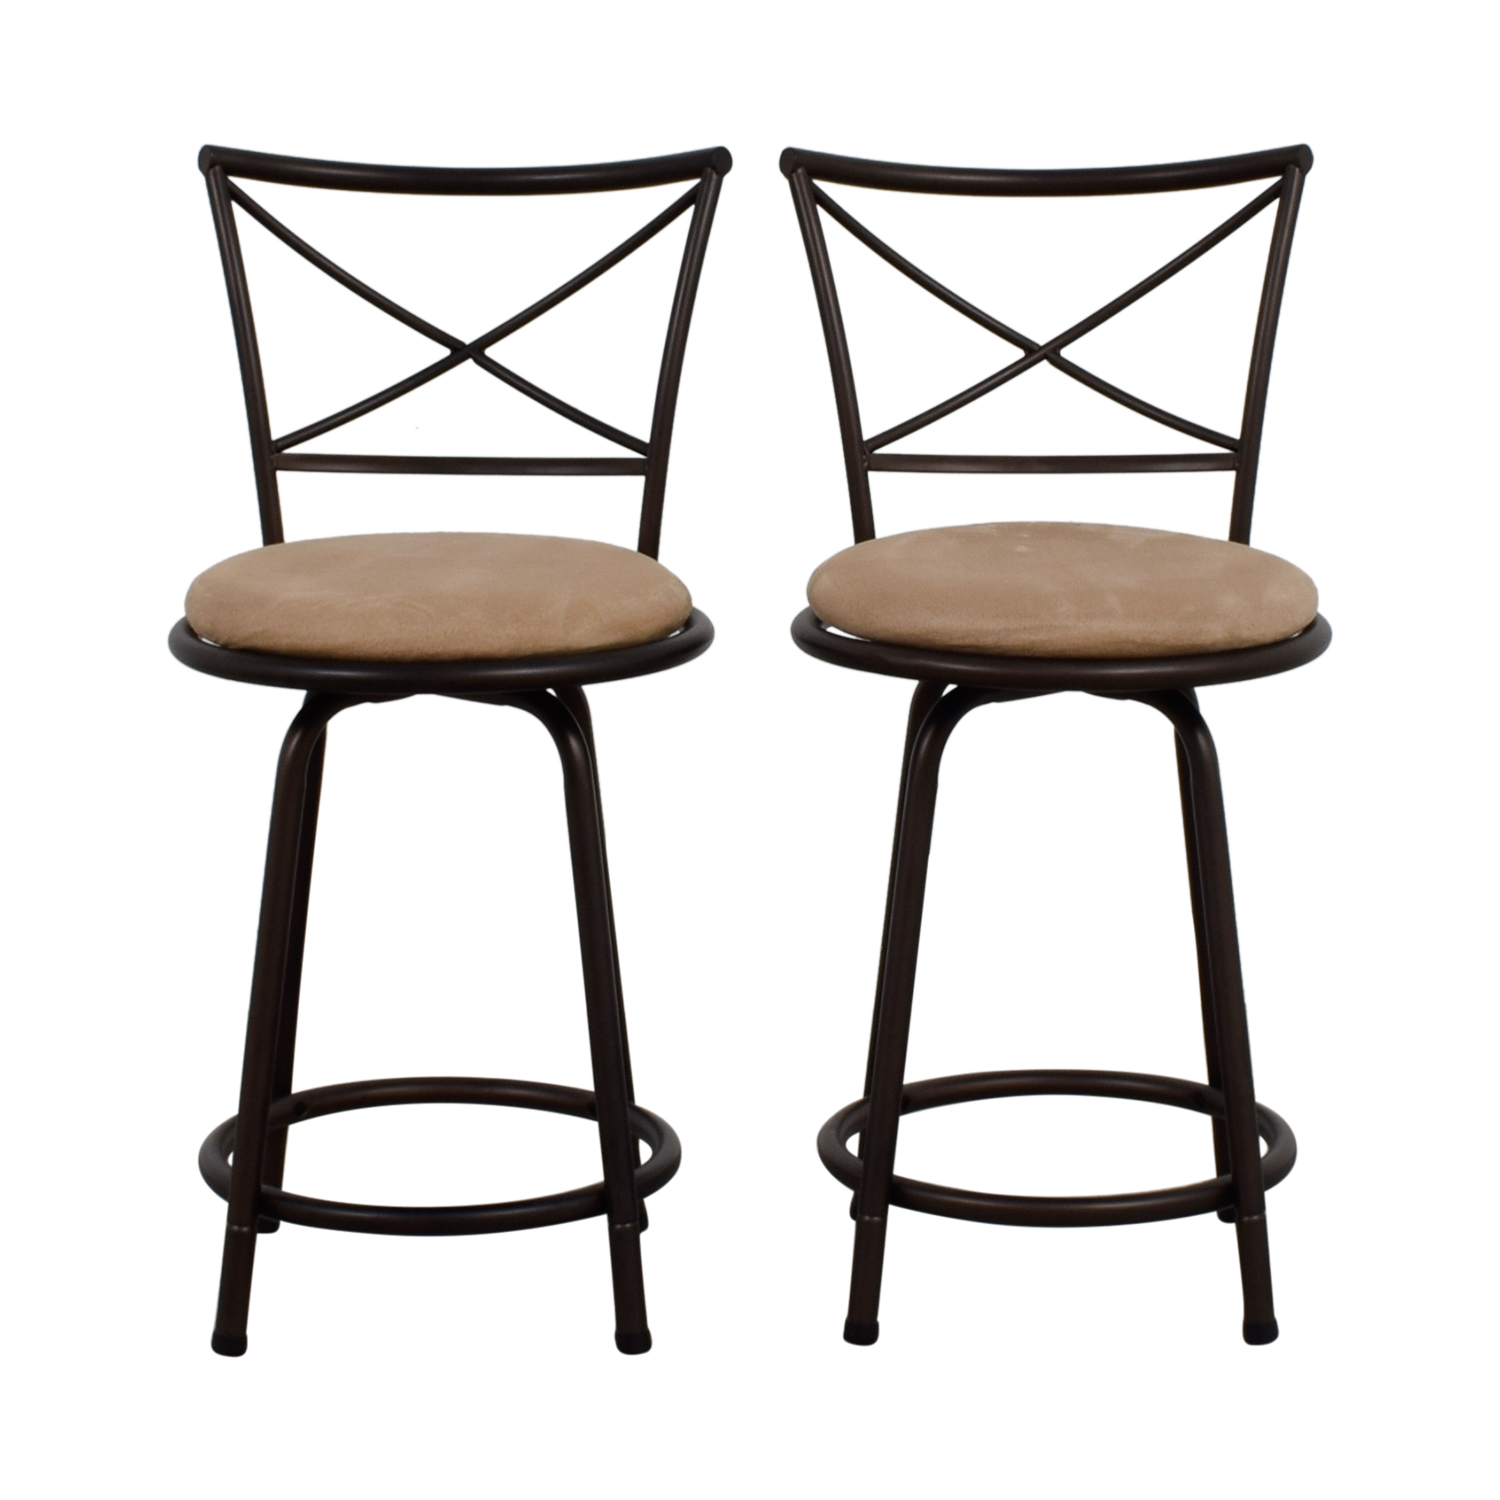 Big Lots Tan Cushioned Swivel Barstools / Chairs